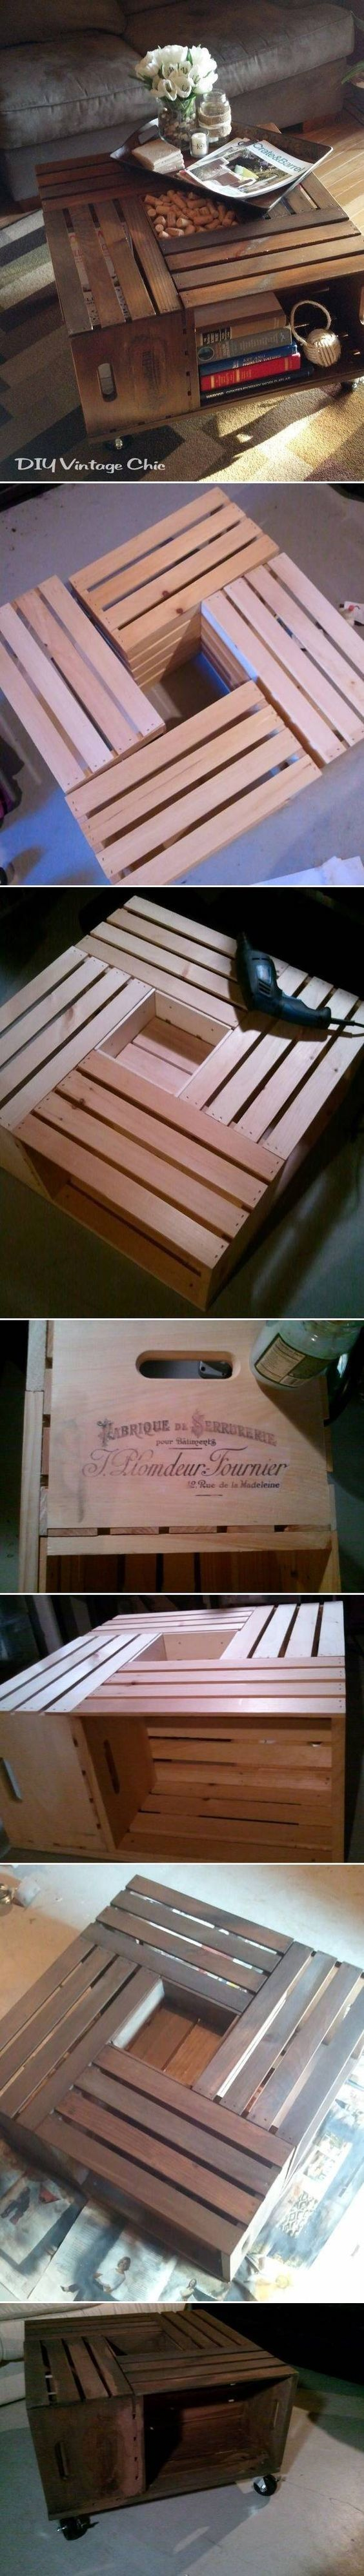 Best 25 crate coffee tables ideas on pinterest traditional best 25 crate coffee tables ideas on pinterest traditional outdoor coffee tables crate table and wine crate coffee table geotapseo Gallery